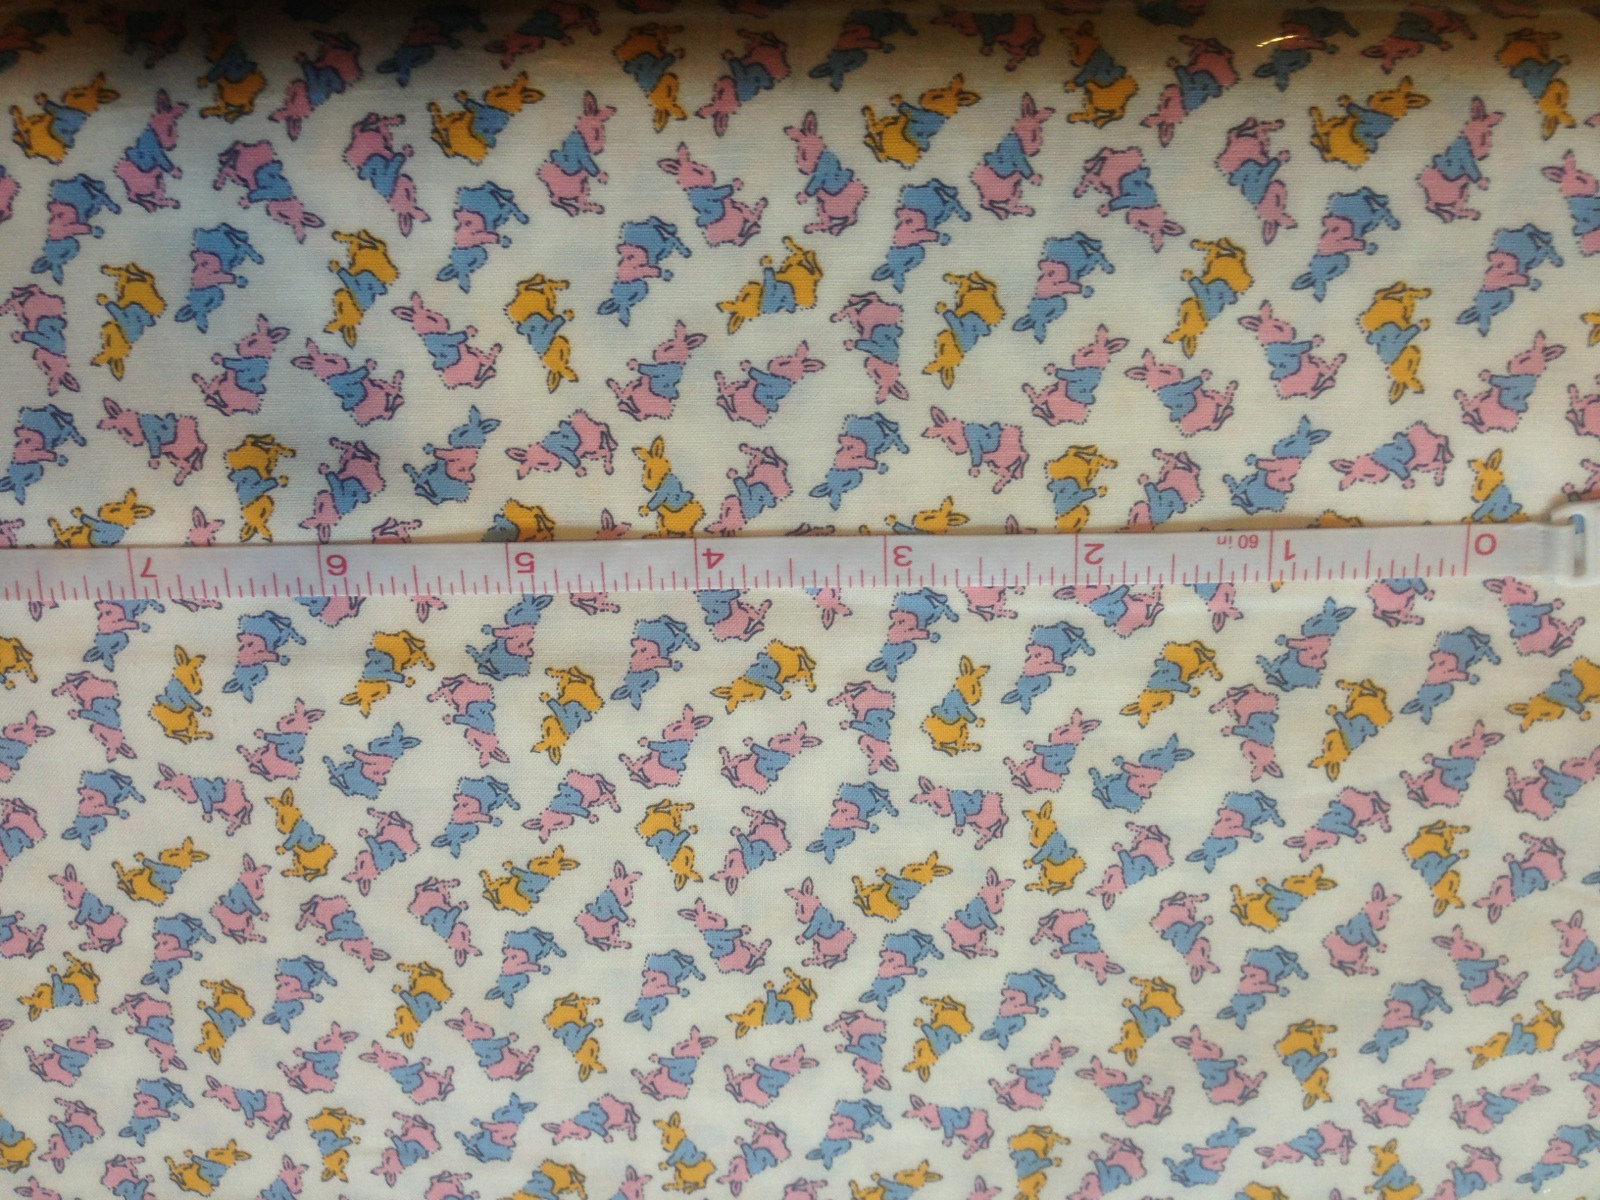 e21398ef82 Kaufman Adventures with Alice 11460-198 Tossed Rabbits  6.99 yd SALE